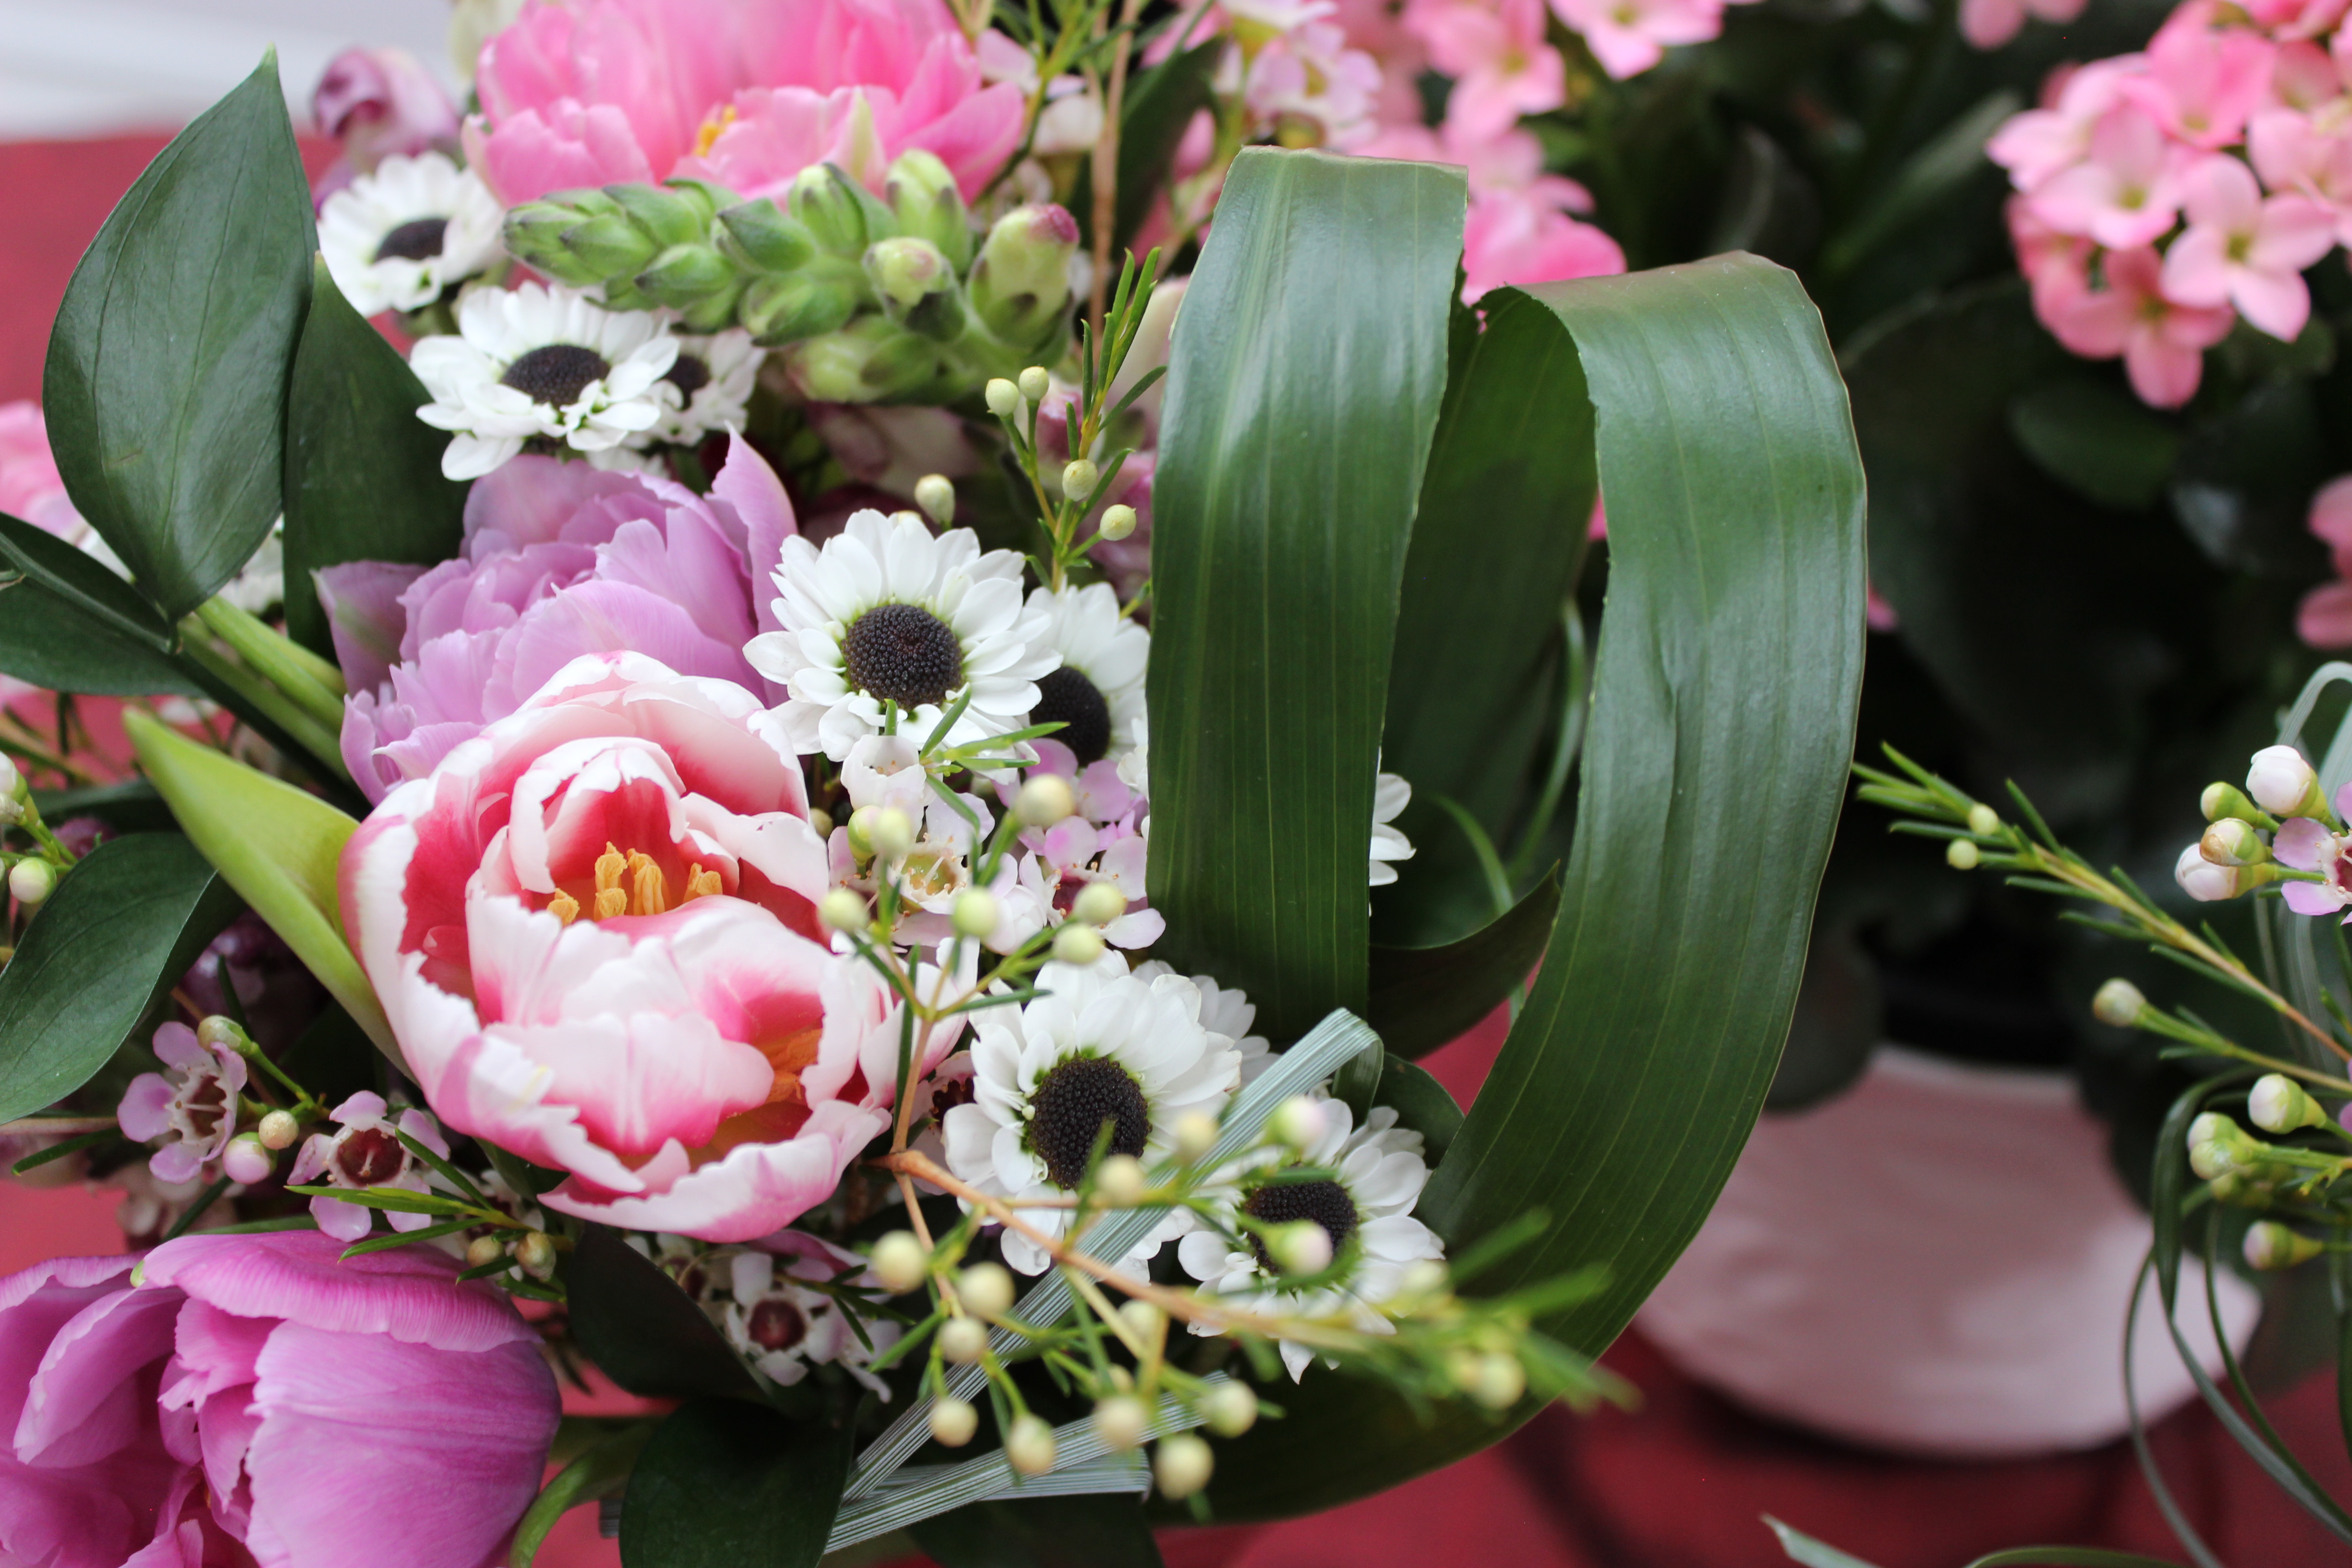 Smithsonian associates valentines day bouquet workshop 1100 this greenery is beautiful by itself but it can also amplify the beauty of any flowers placed around it the leaves are long and chic creating a sleek izmirmasajfo Choice Image